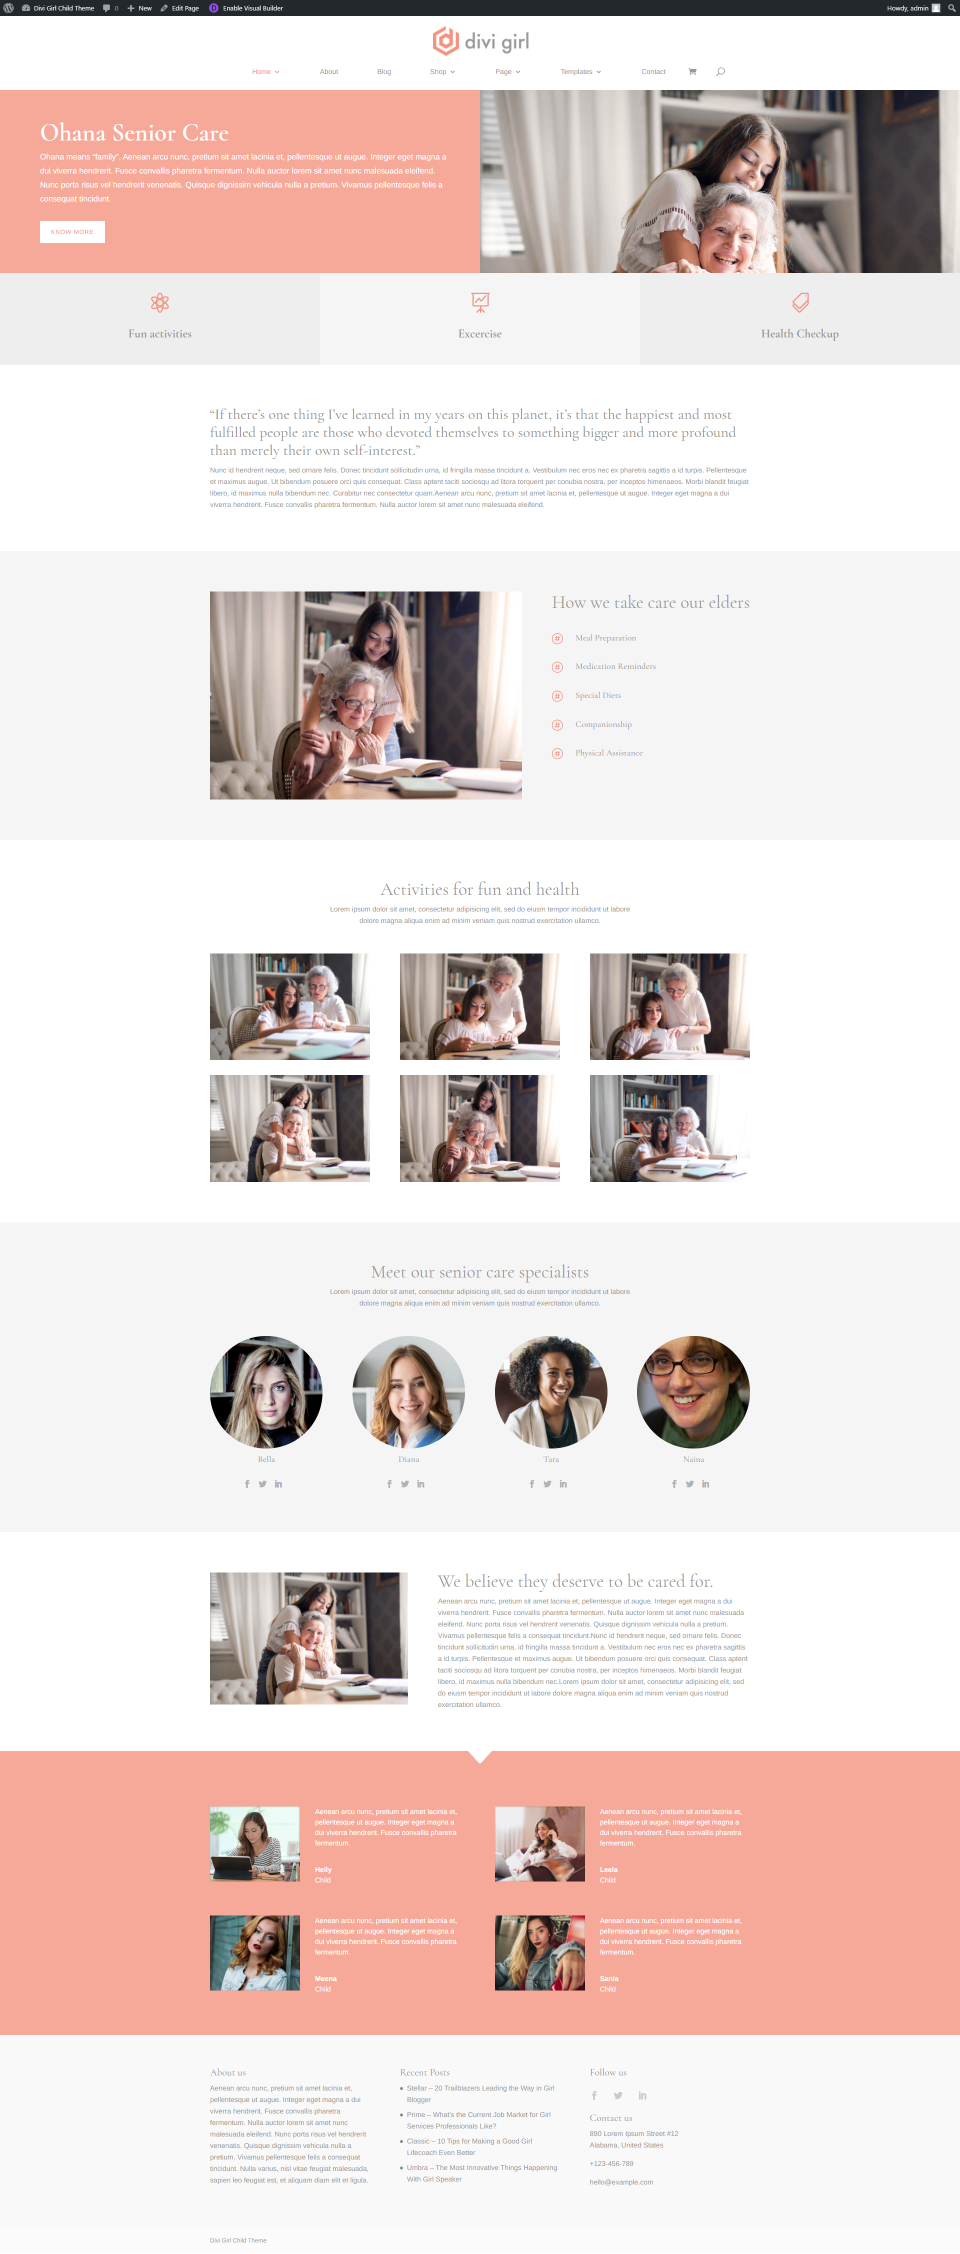 divi-girl-child-theme-overview-16 Divi Girl Child Theme Overview